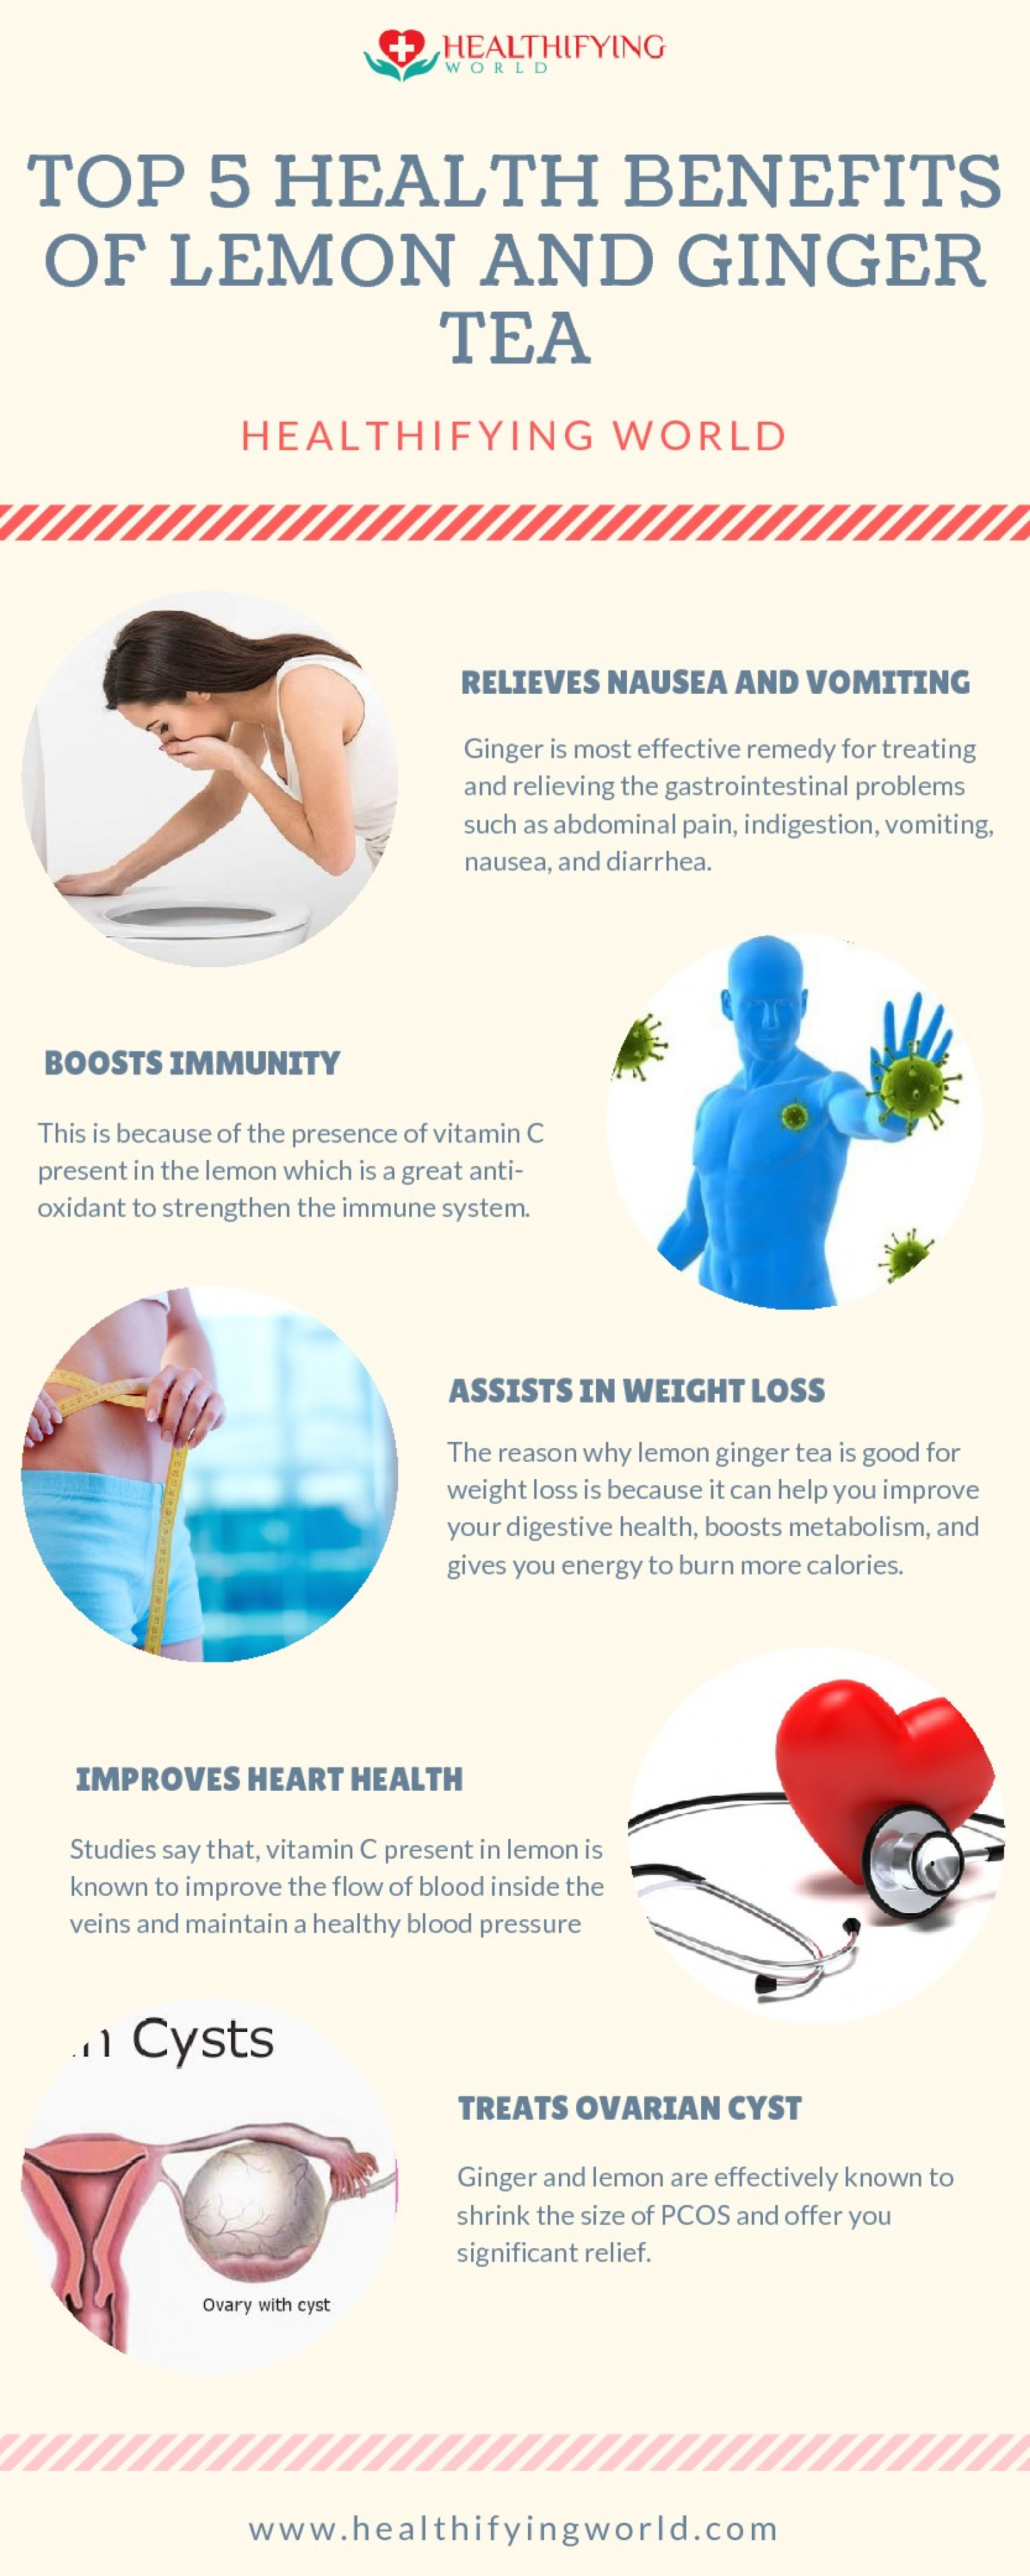 Health Benefits of Lemon & Ginger Tea Infographic